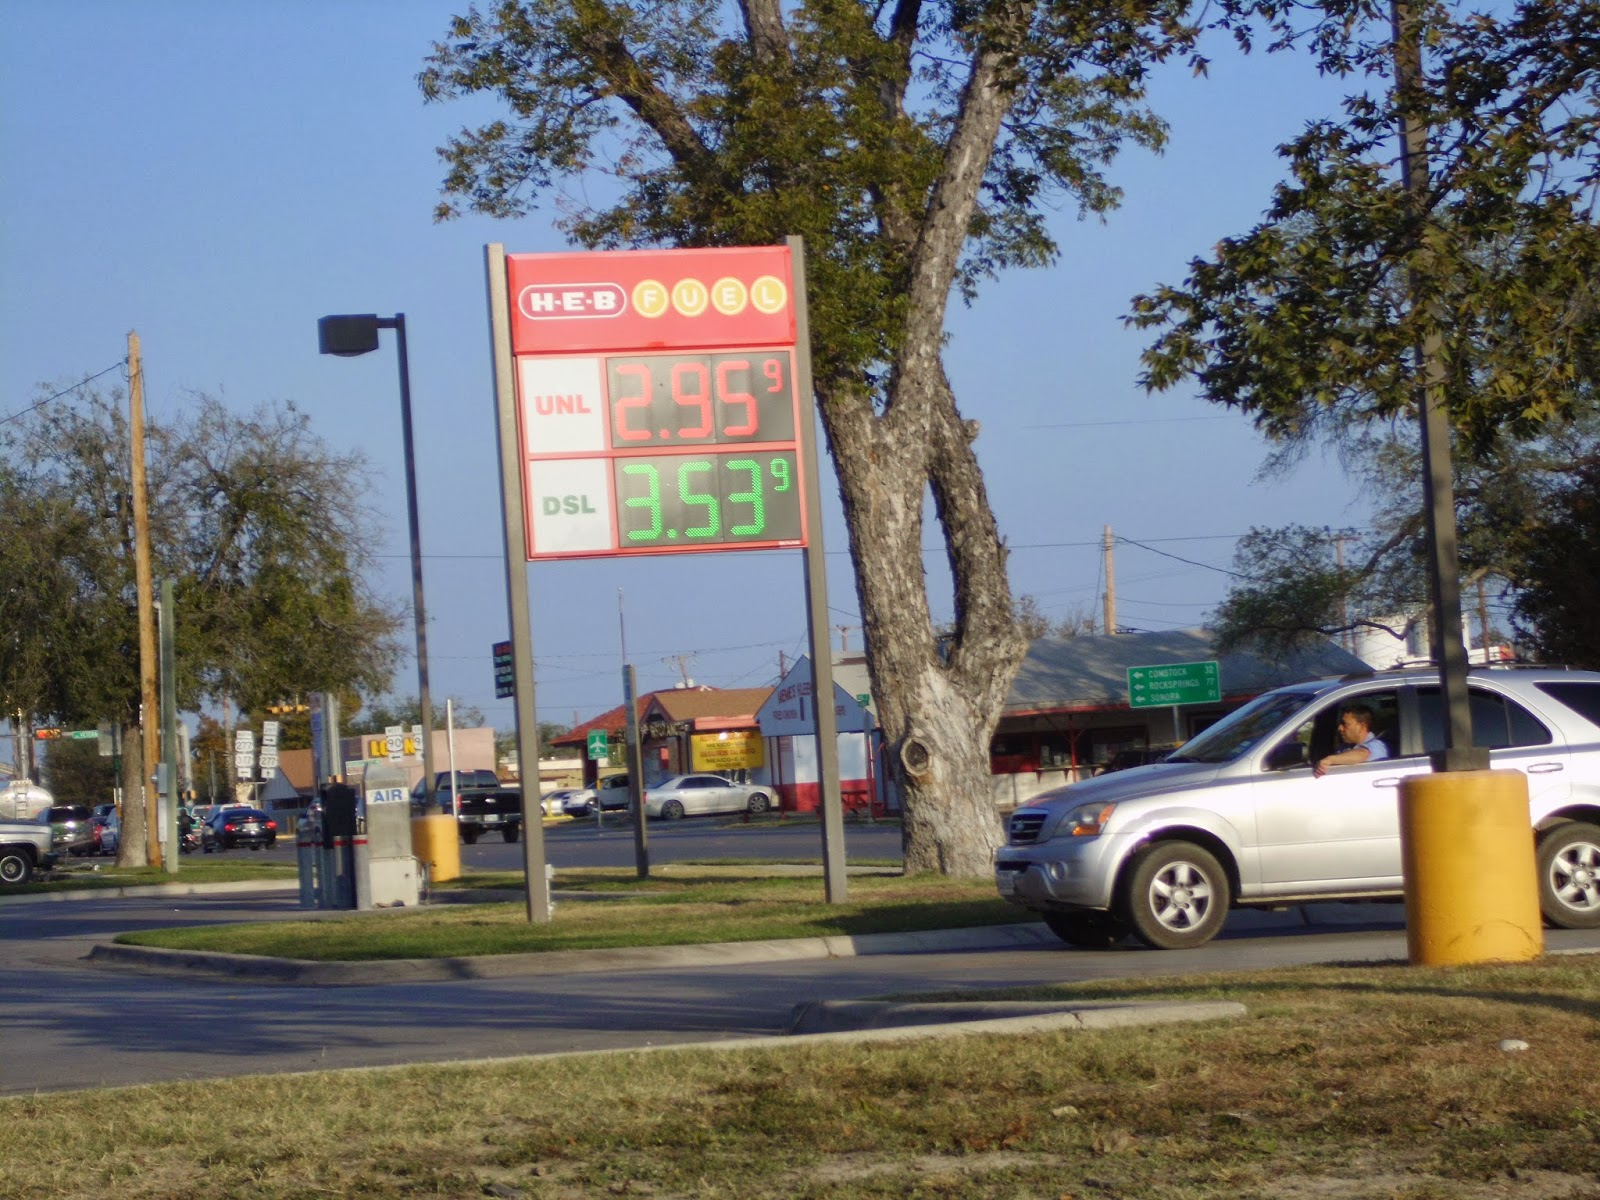 Heb Gas Prices >> Terlingua Dreams Darn Gas Prices On The Rise